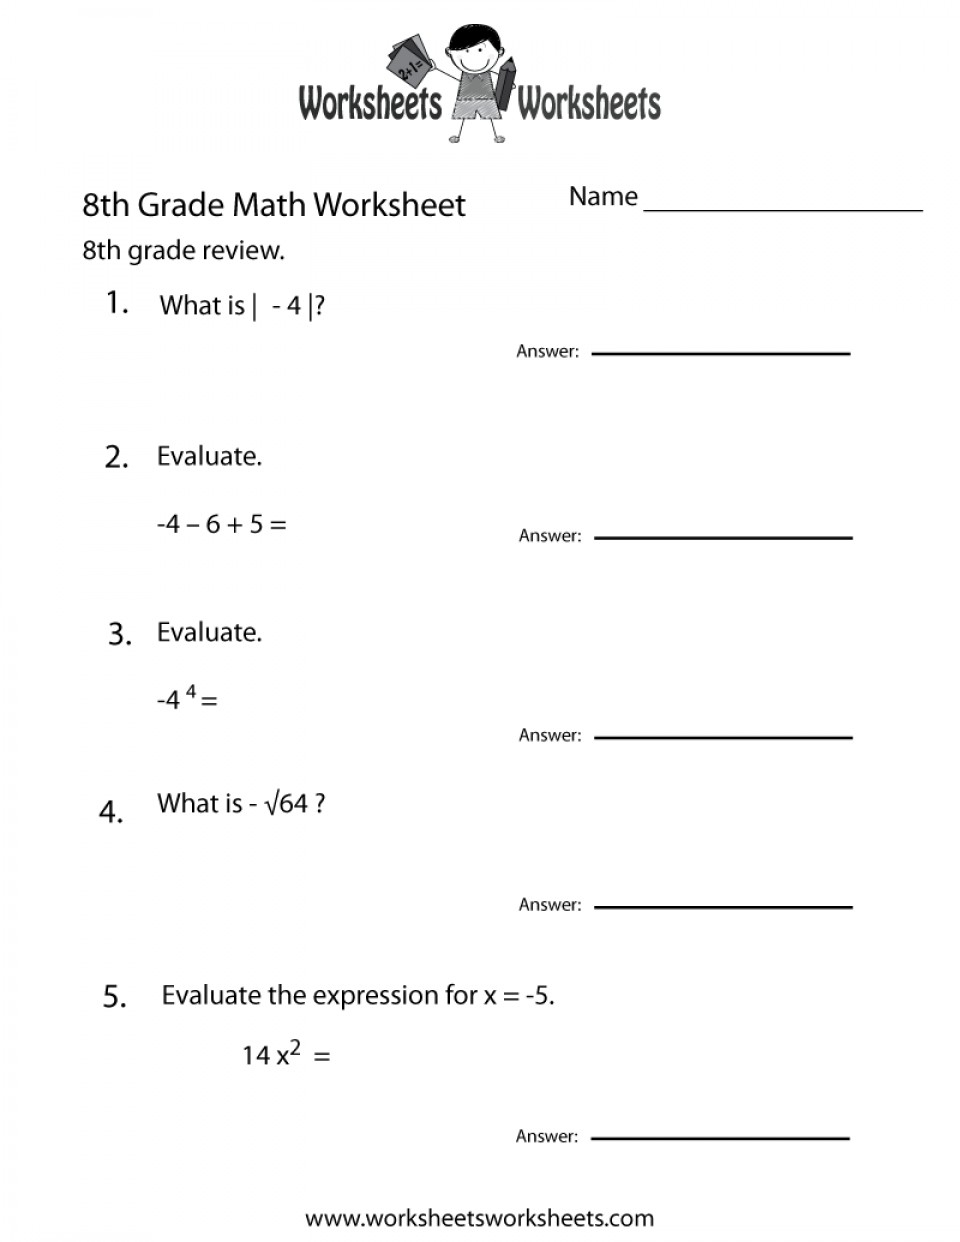 Math Worksheets Printable Www Mathworksheets4Kids Staggering Com | Printable Math Worksheets Www Mathworksheets4Kids Com